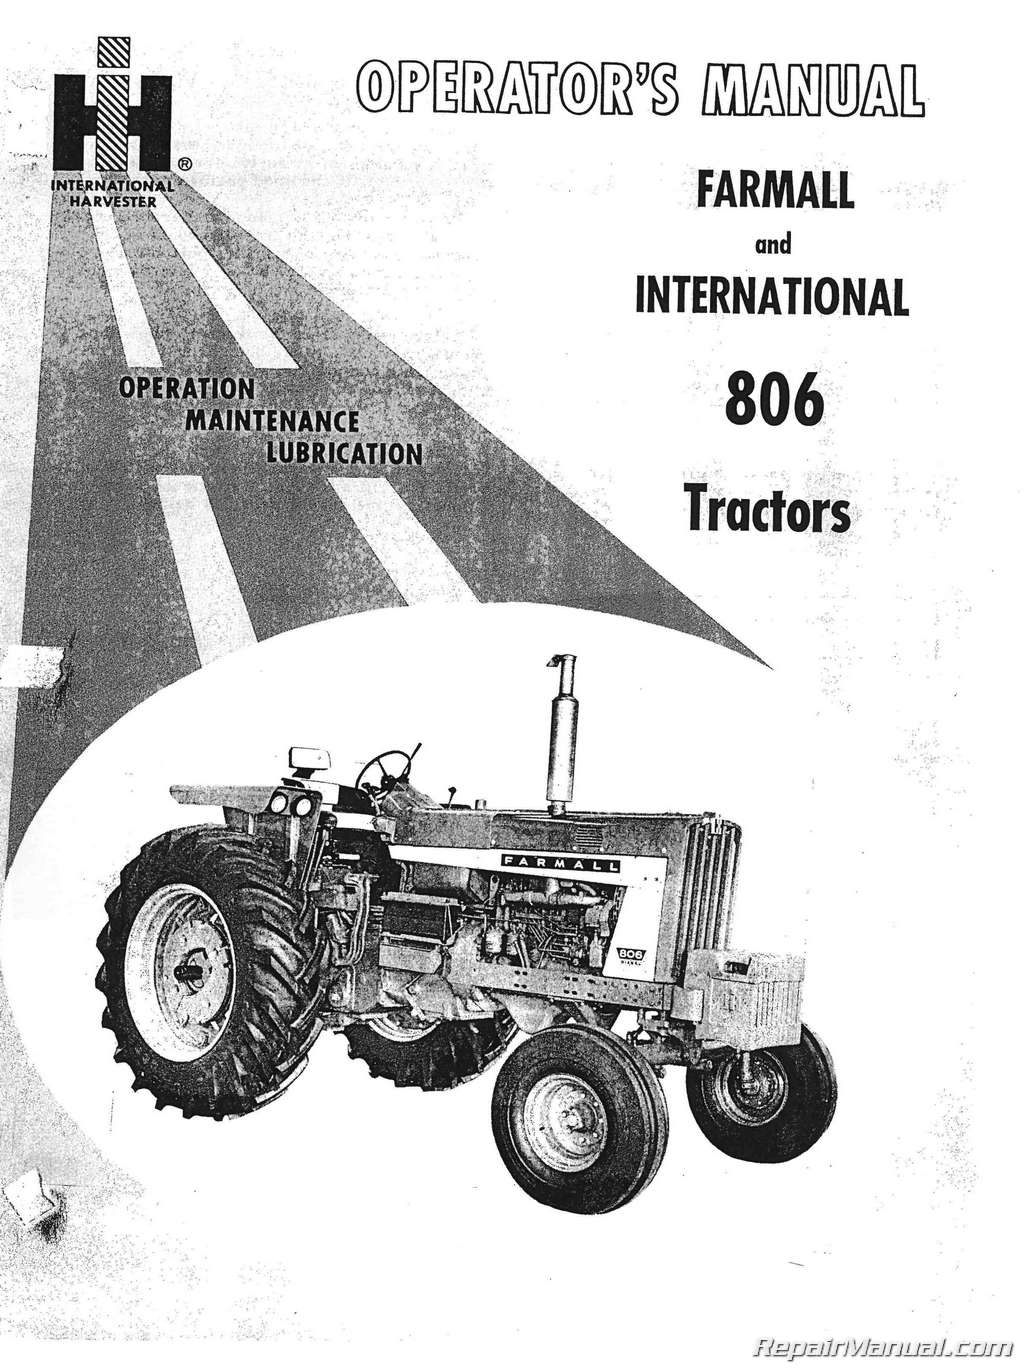 806 international tractor wiring diagram ht 1846  wiring diagrams additionally farmall 806 tractor diagram  farmall 806 tractor diagram